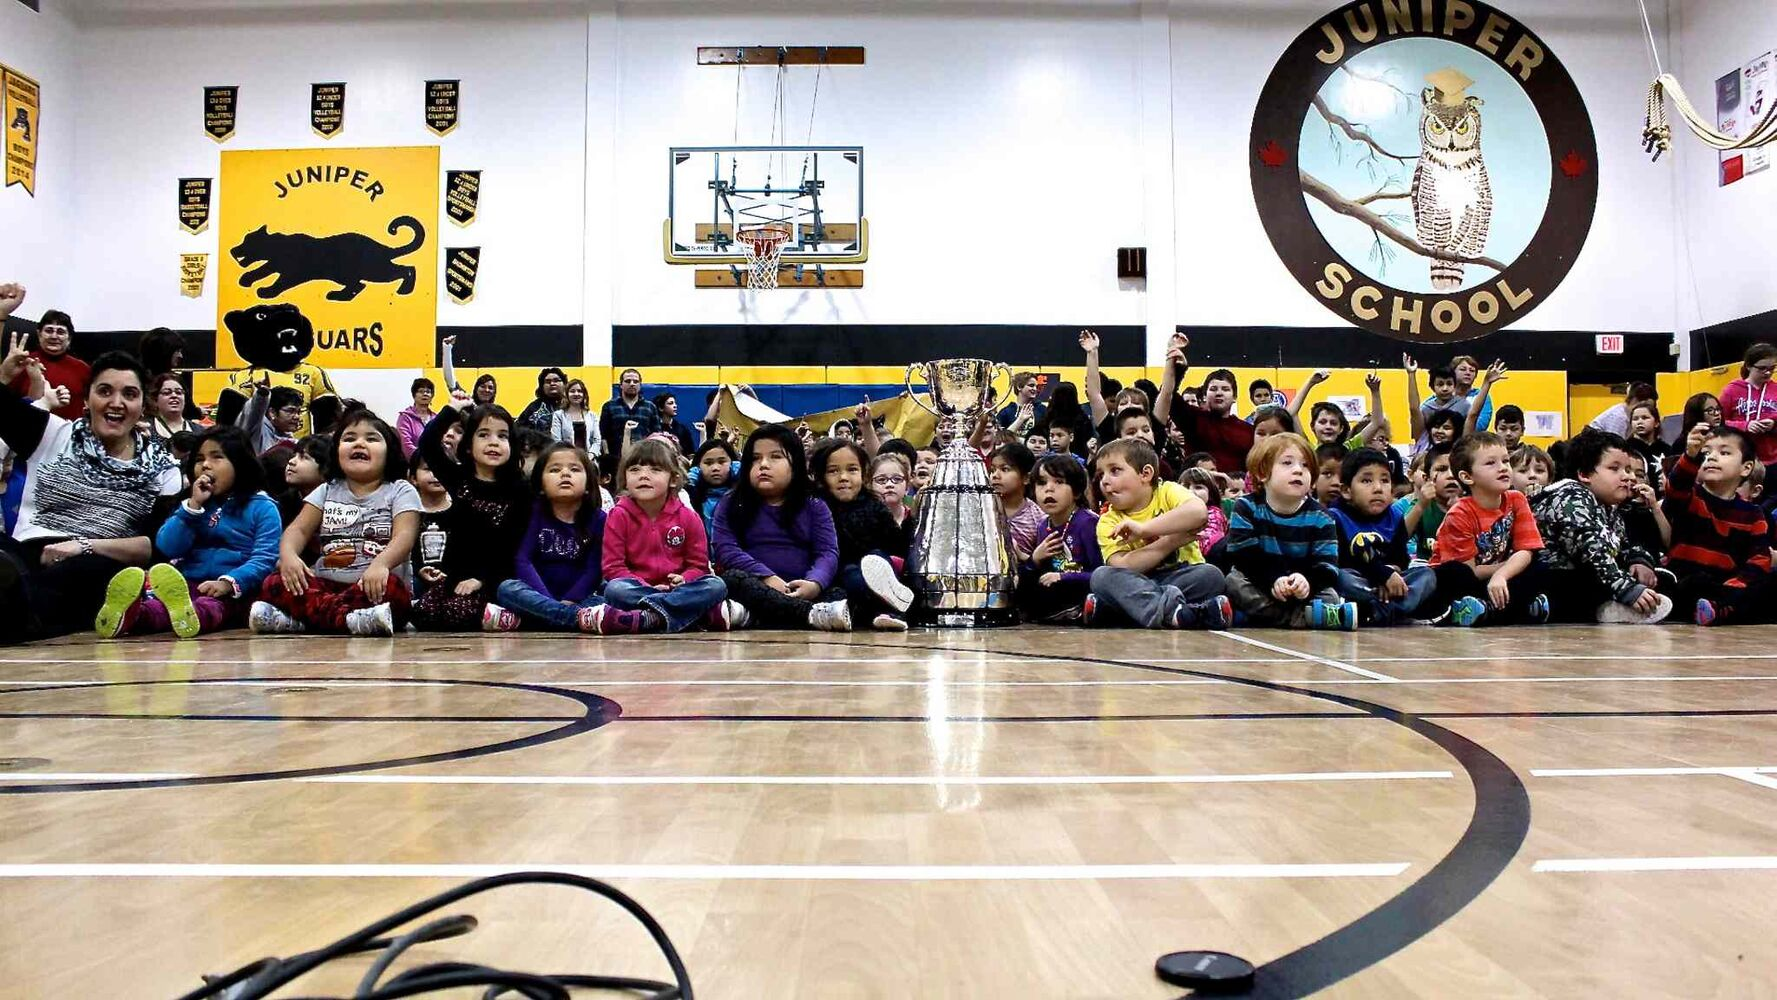 Juniper Elementary School, home of the Jaguars, pose for a group photo with the Grey Cup. The trophy was in town as part of an eight-day tour through northern Manitoba to help promote the Grey Cup game in Winnipeg this year.